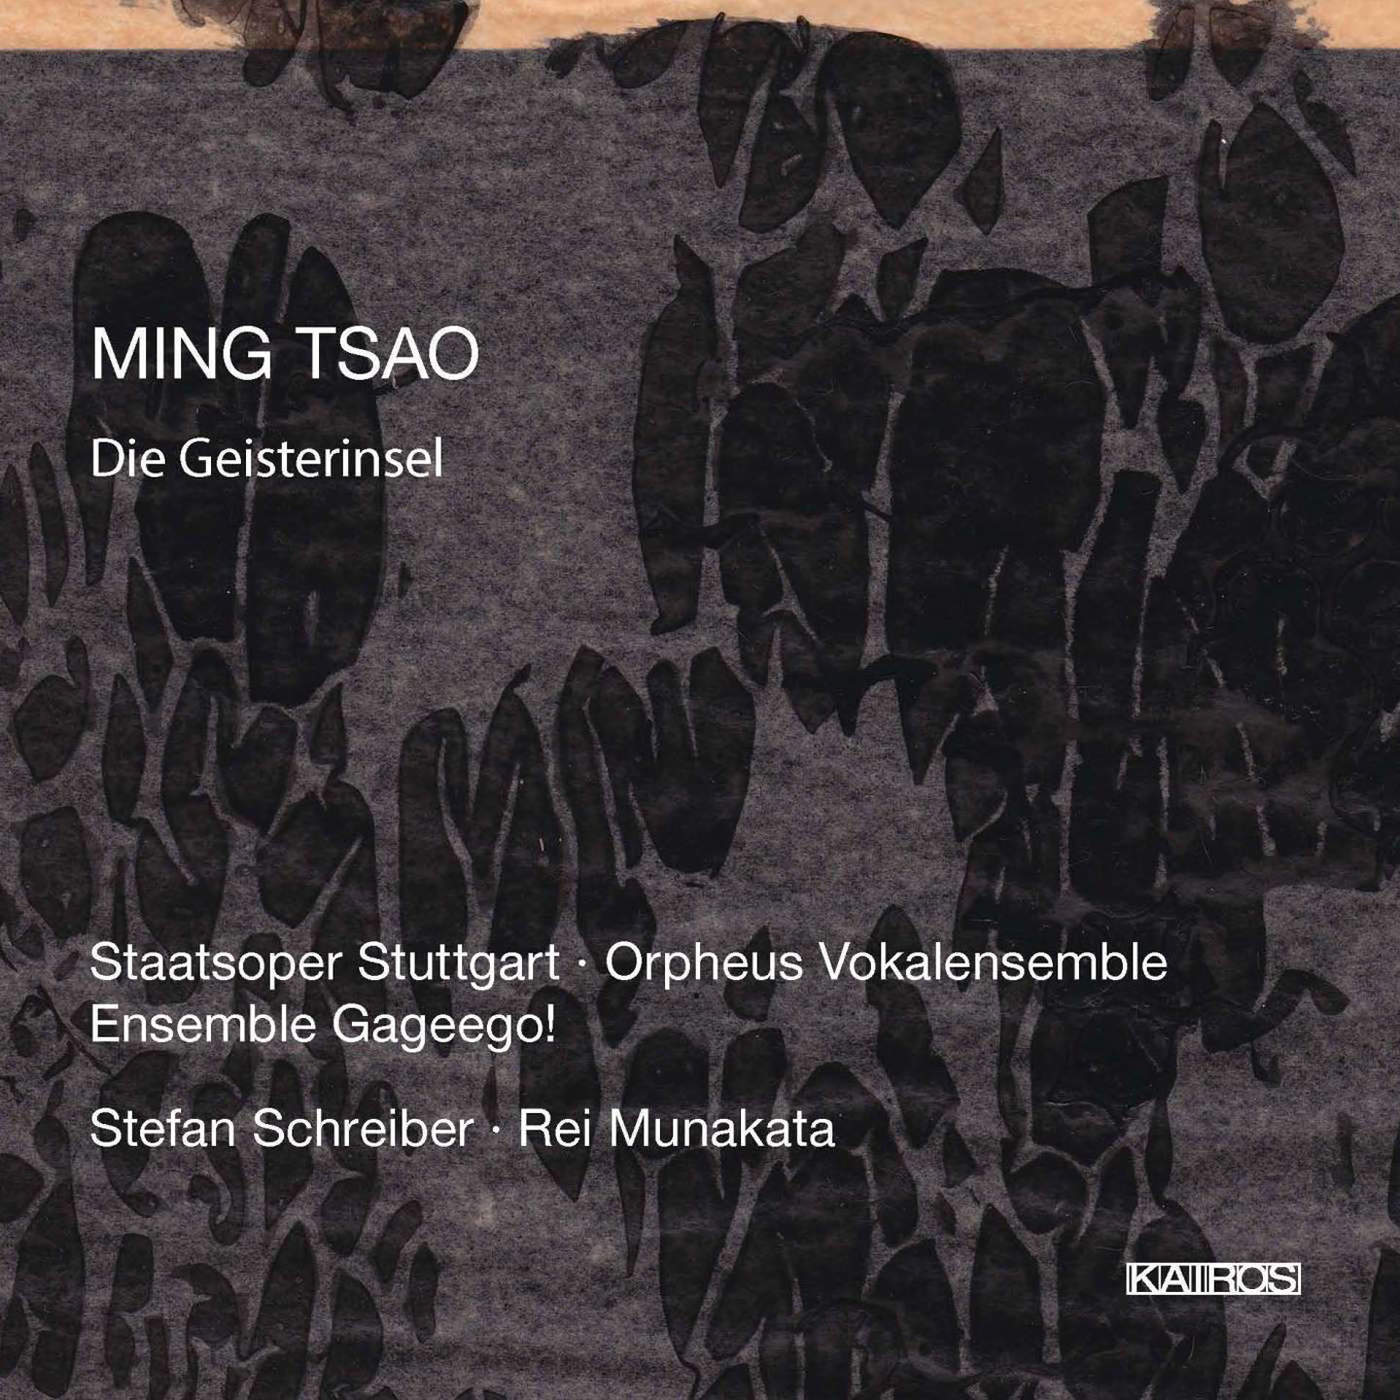 Ming Tsao: Die Geisterinsel cd album cover